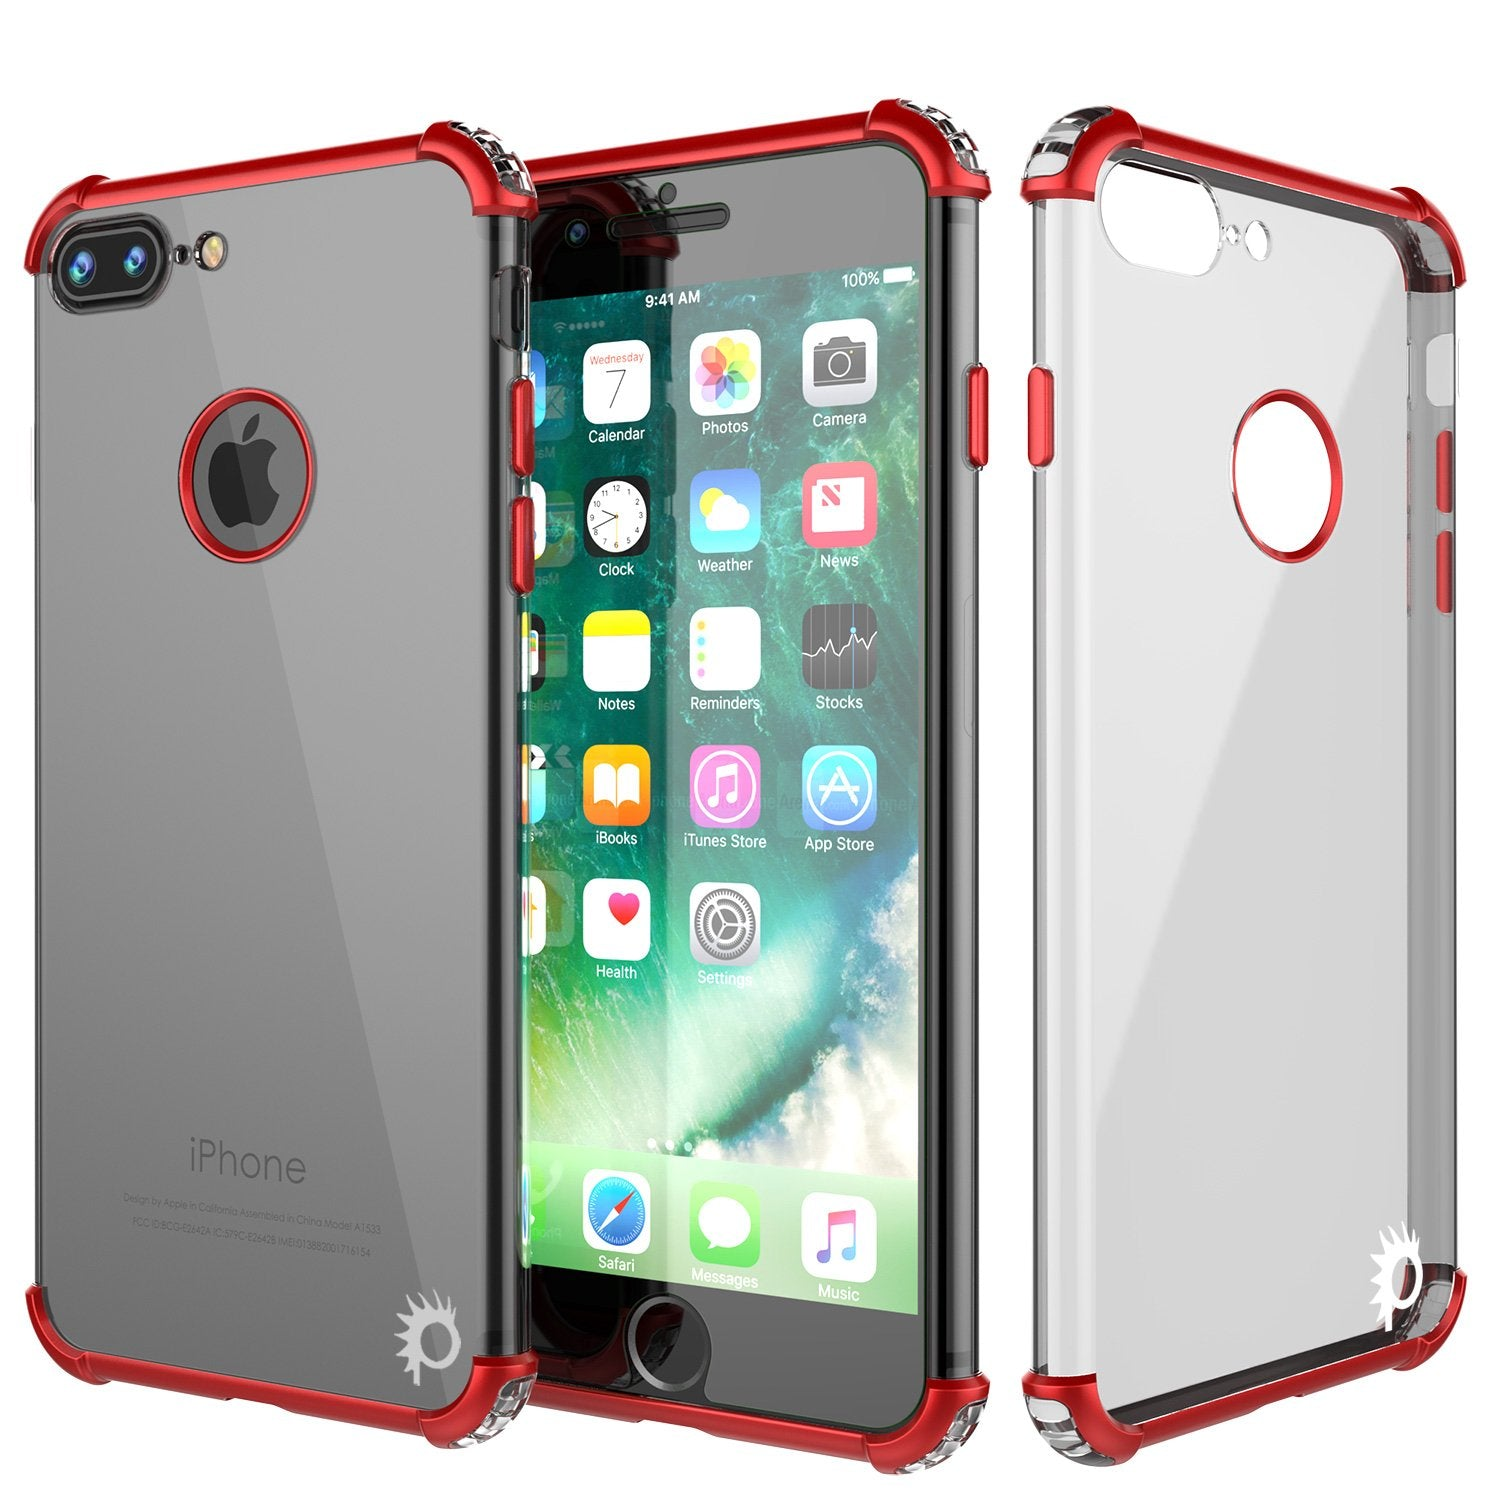 iPhone 7 PLUS Case, Punkcase BLAZE SERIES Protective Cover [Red]